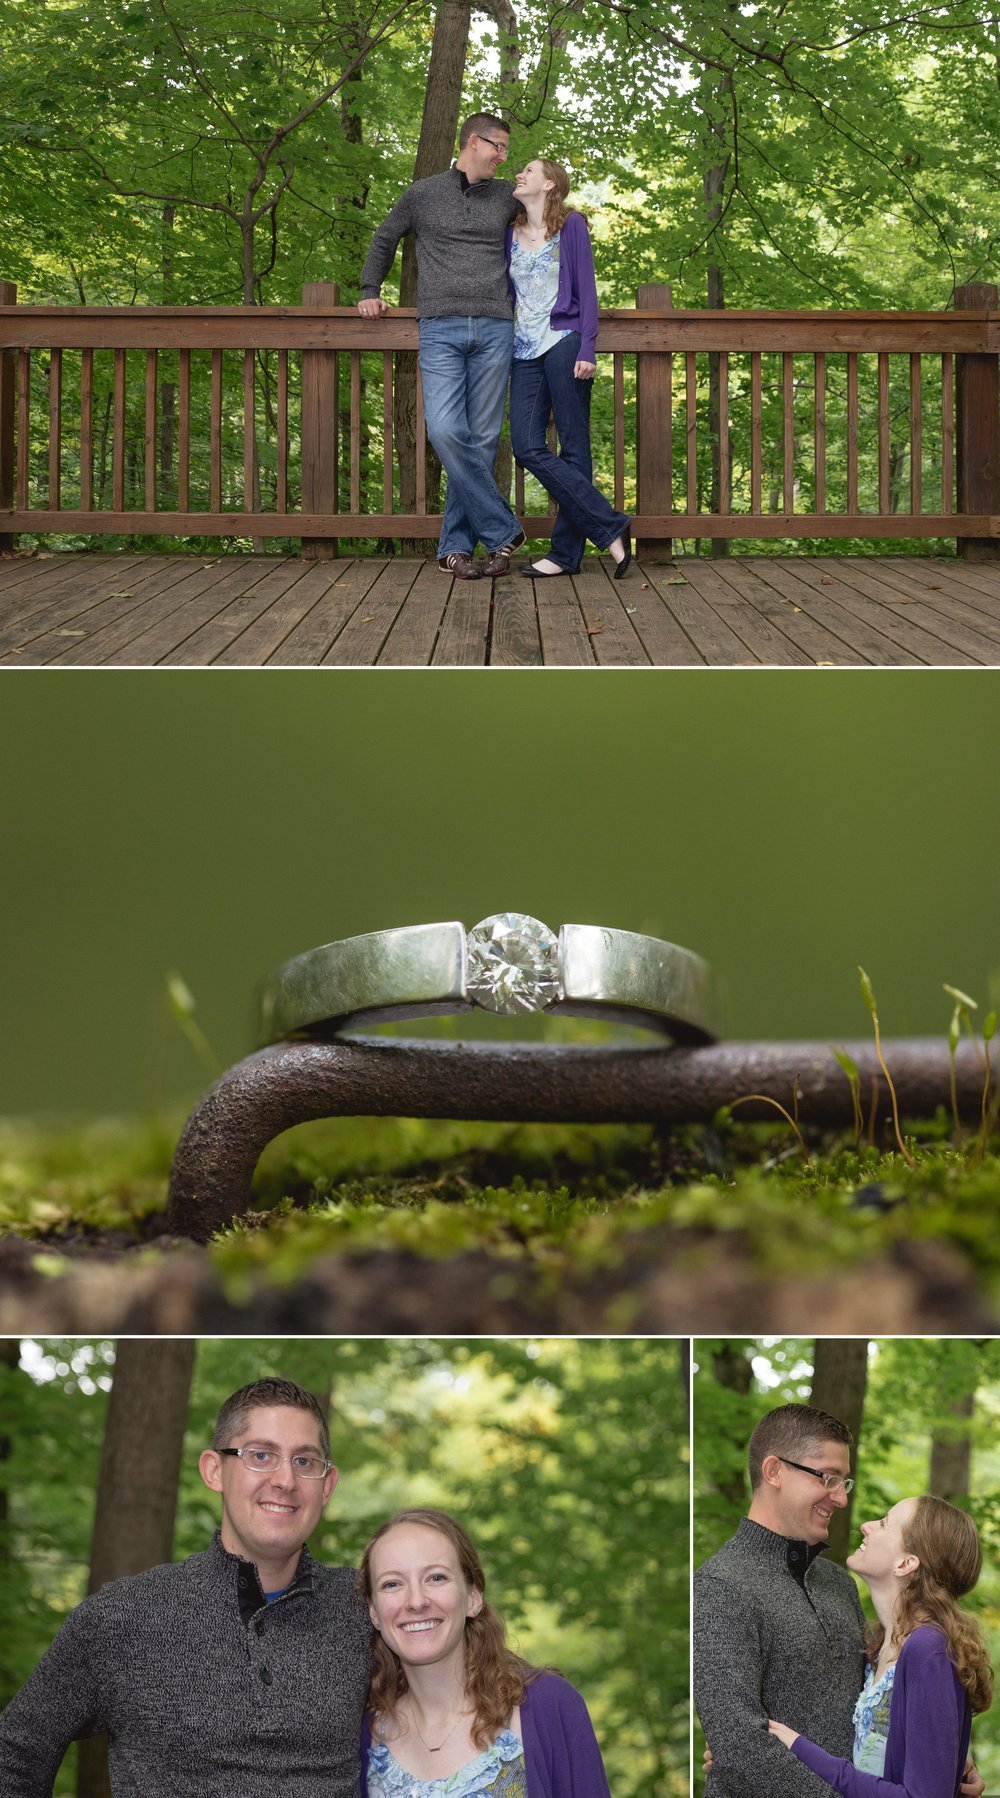 highbanks-metro-park-lewis-center-engagement-portraits-gahanna-columbus-photographer-studio-003.JPG